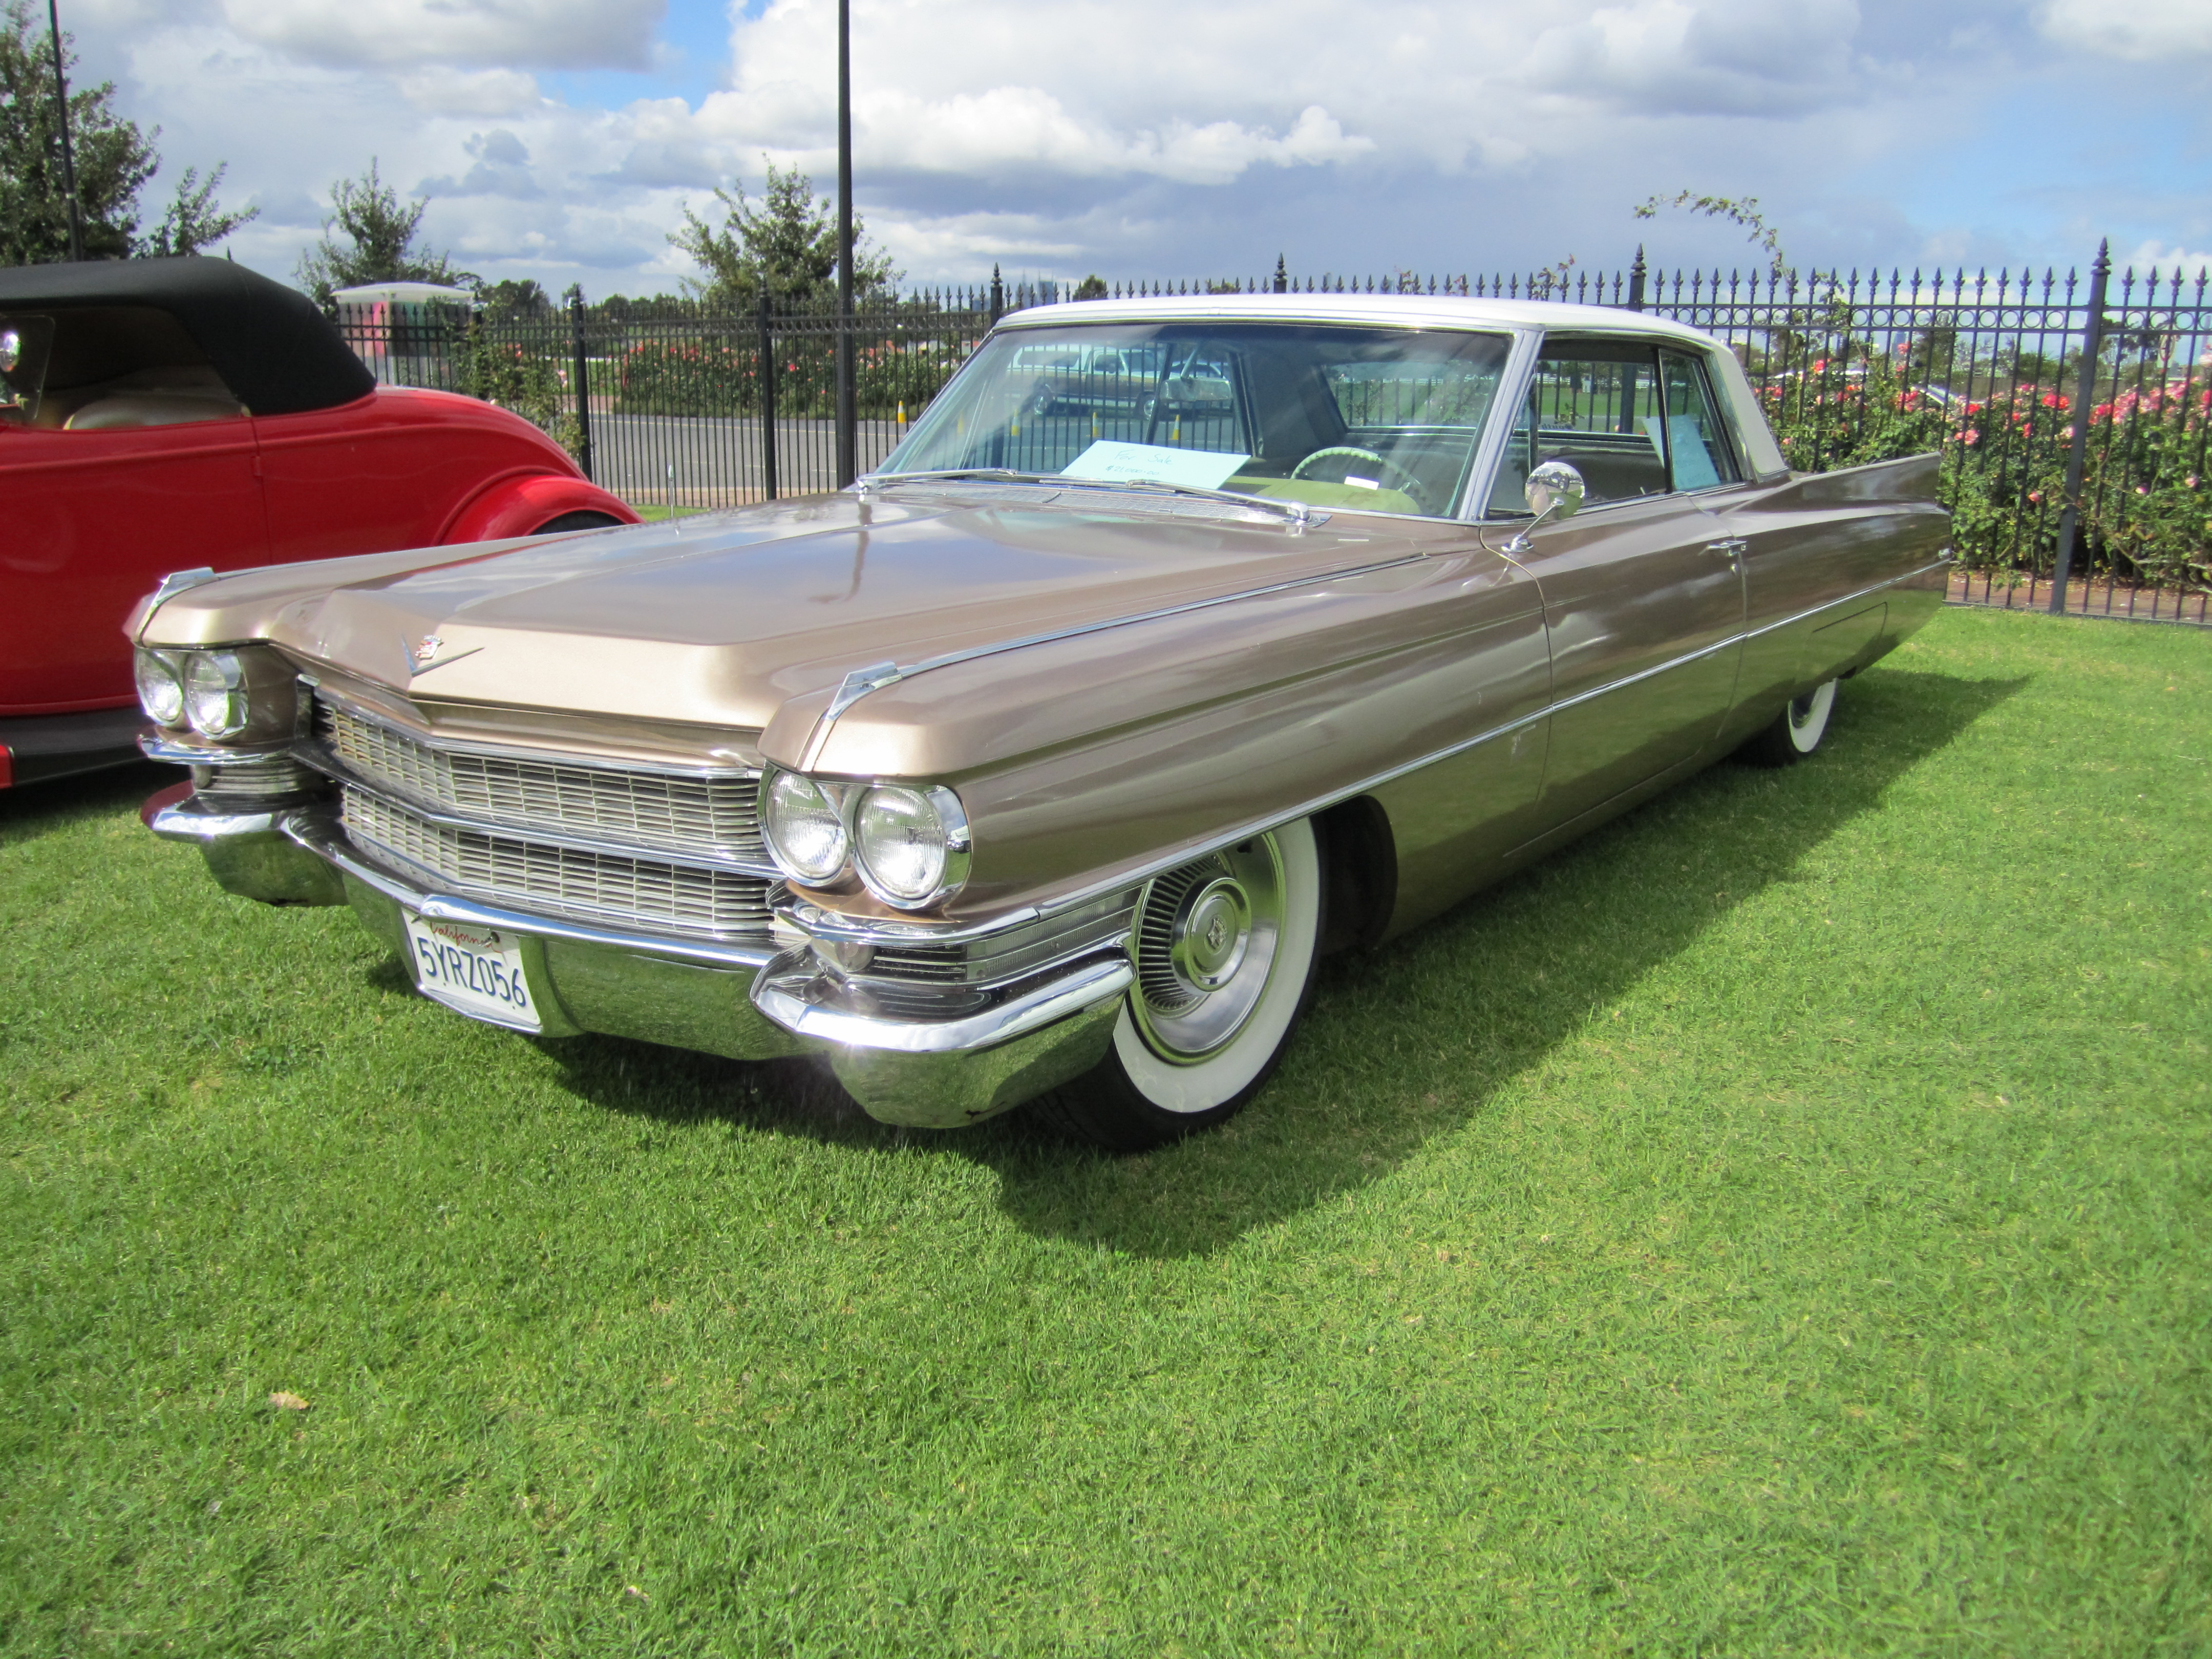 1963 Cadillac Coupe DeVille Wallpaper For Iphone